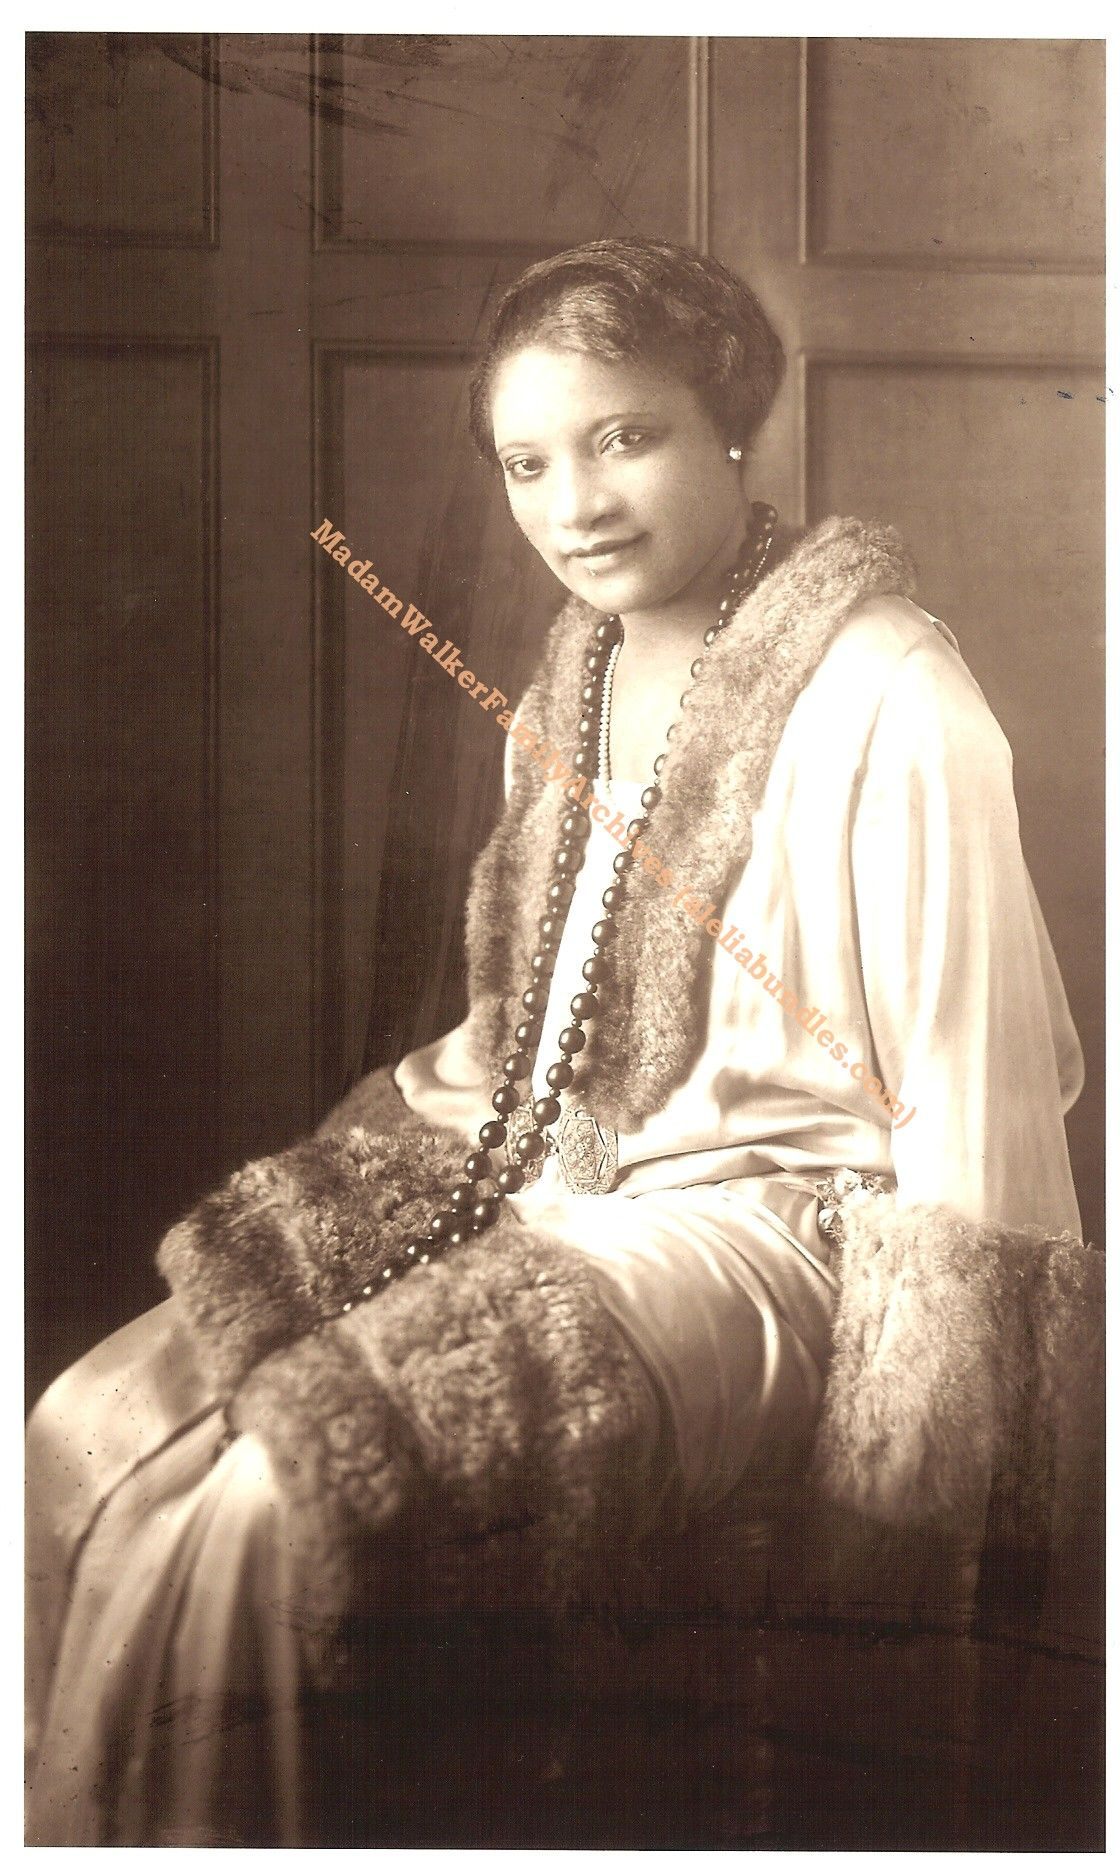 Pin By Glender Howard On Black History Culture African American History Black Arts Movement Women In History